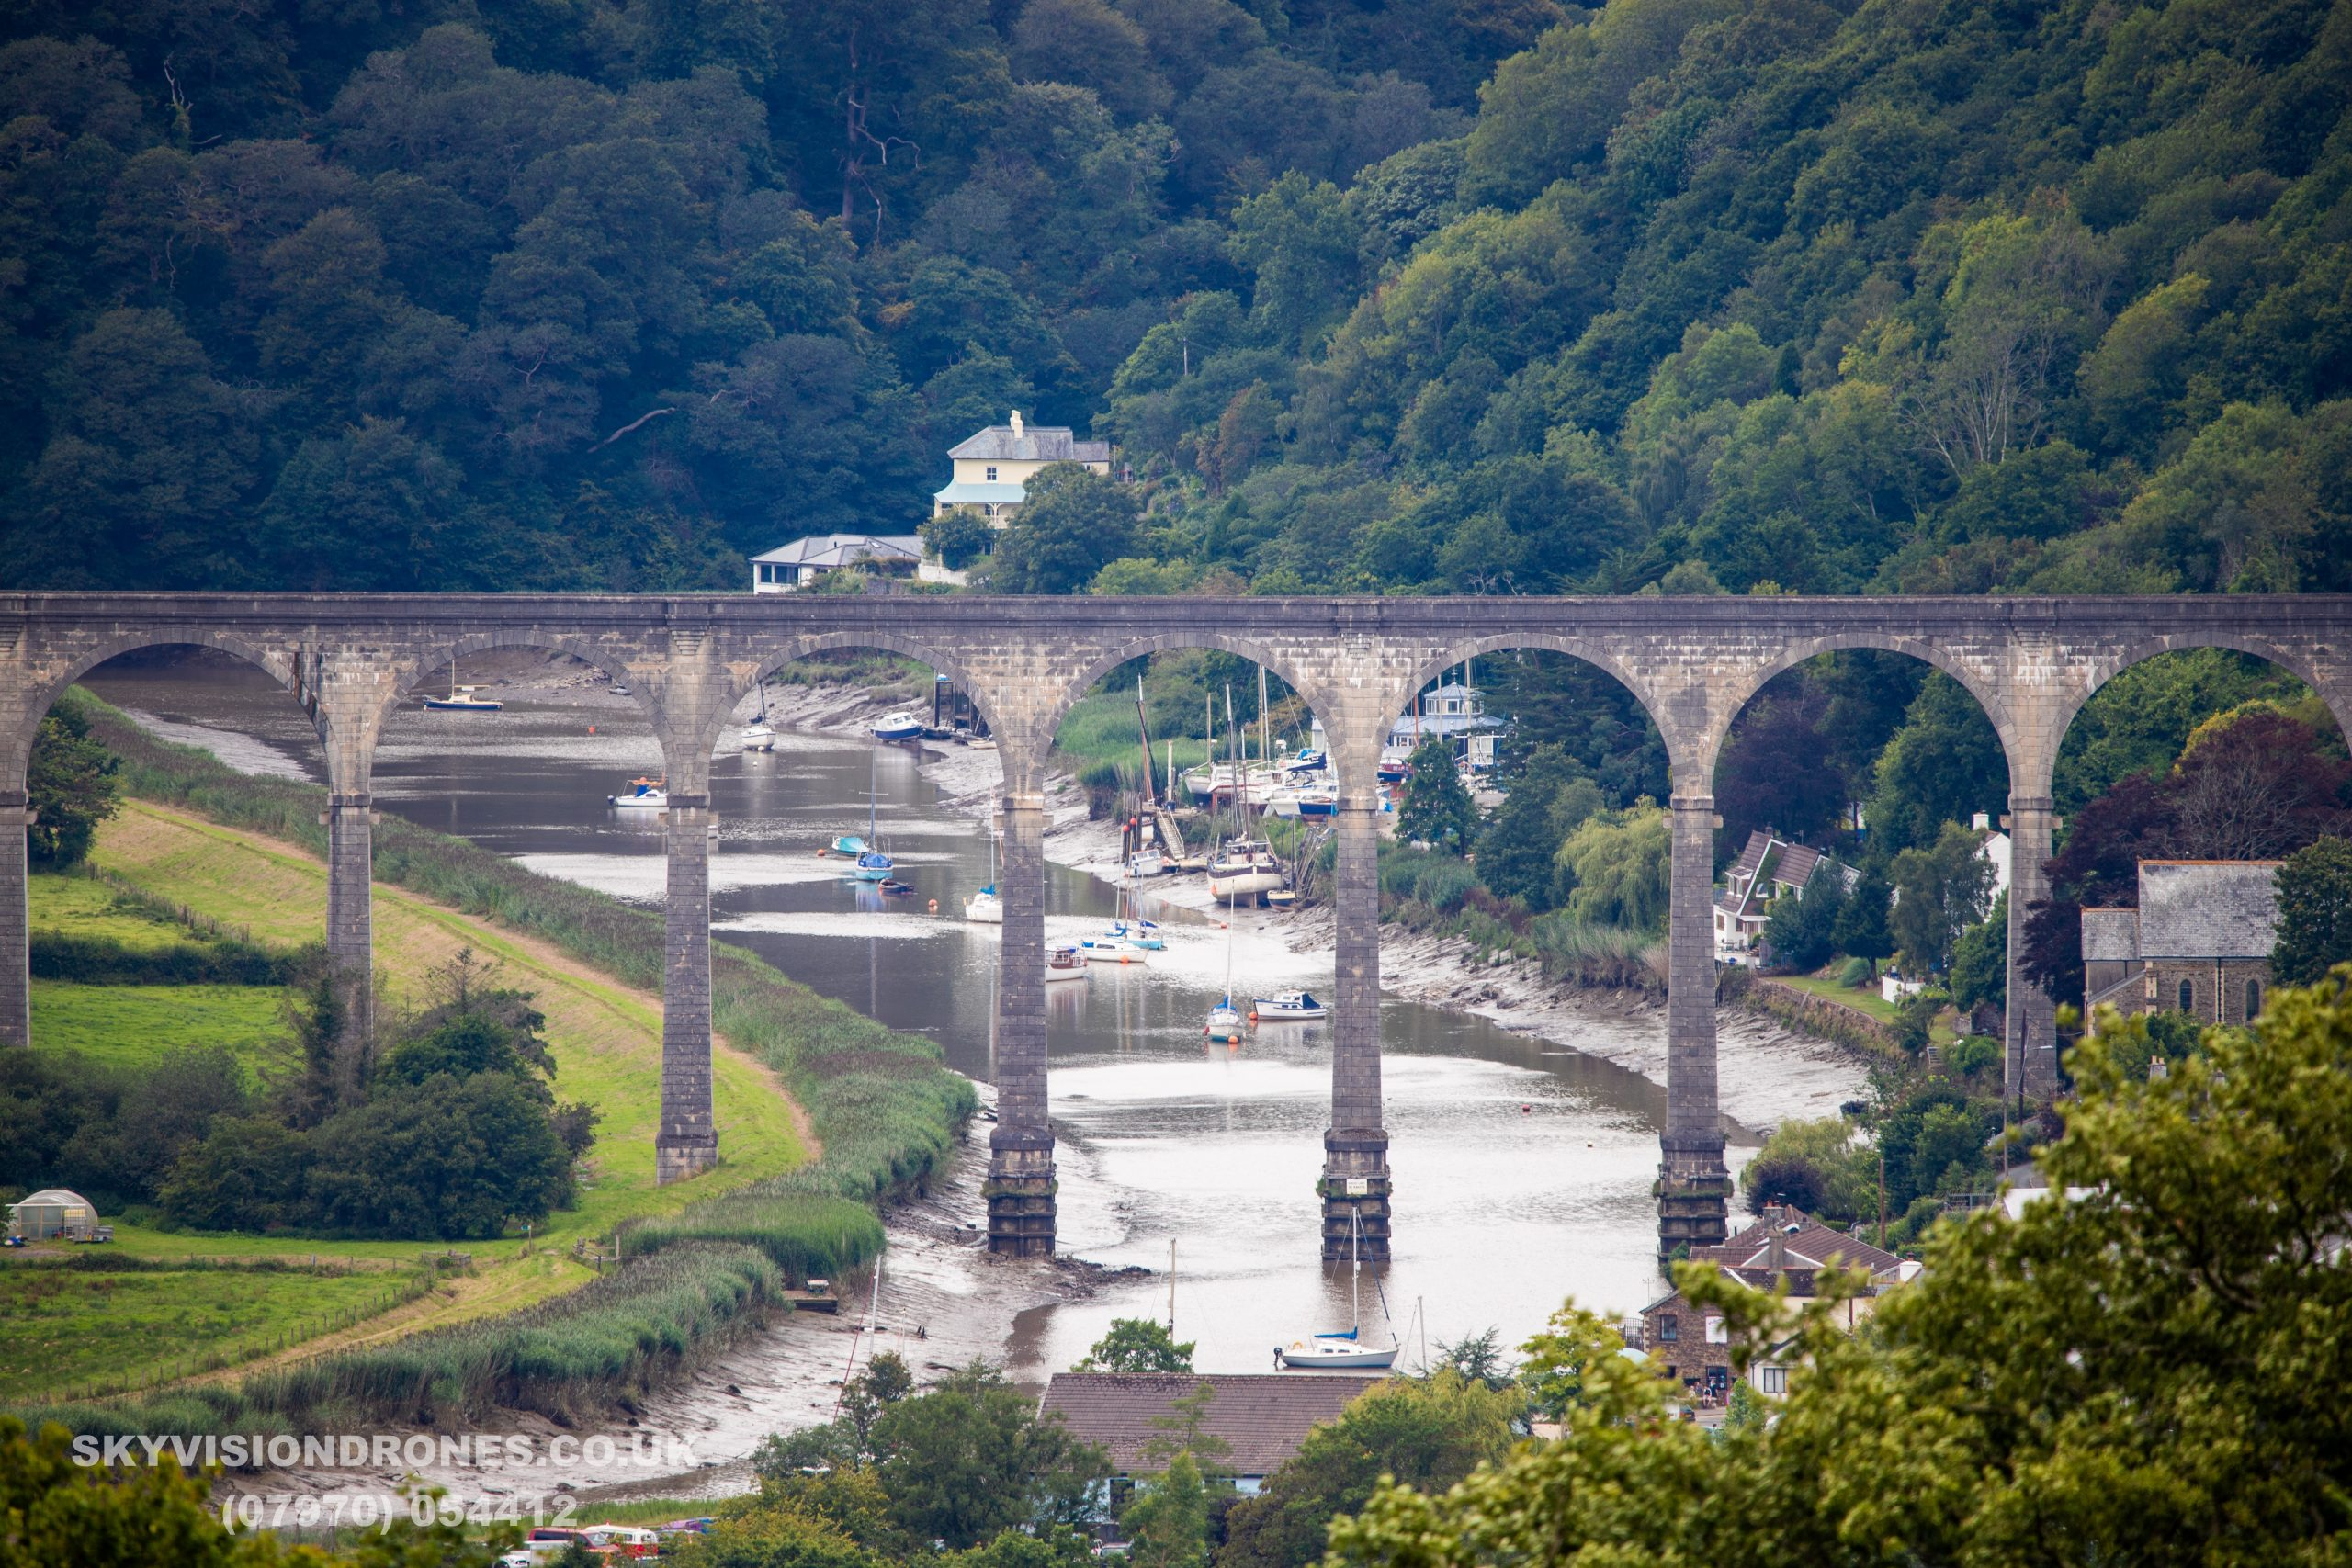 Calstock Viaduct on a fine day. Visit Tamar Valley. Thans Kevin Hampton for hte picutre